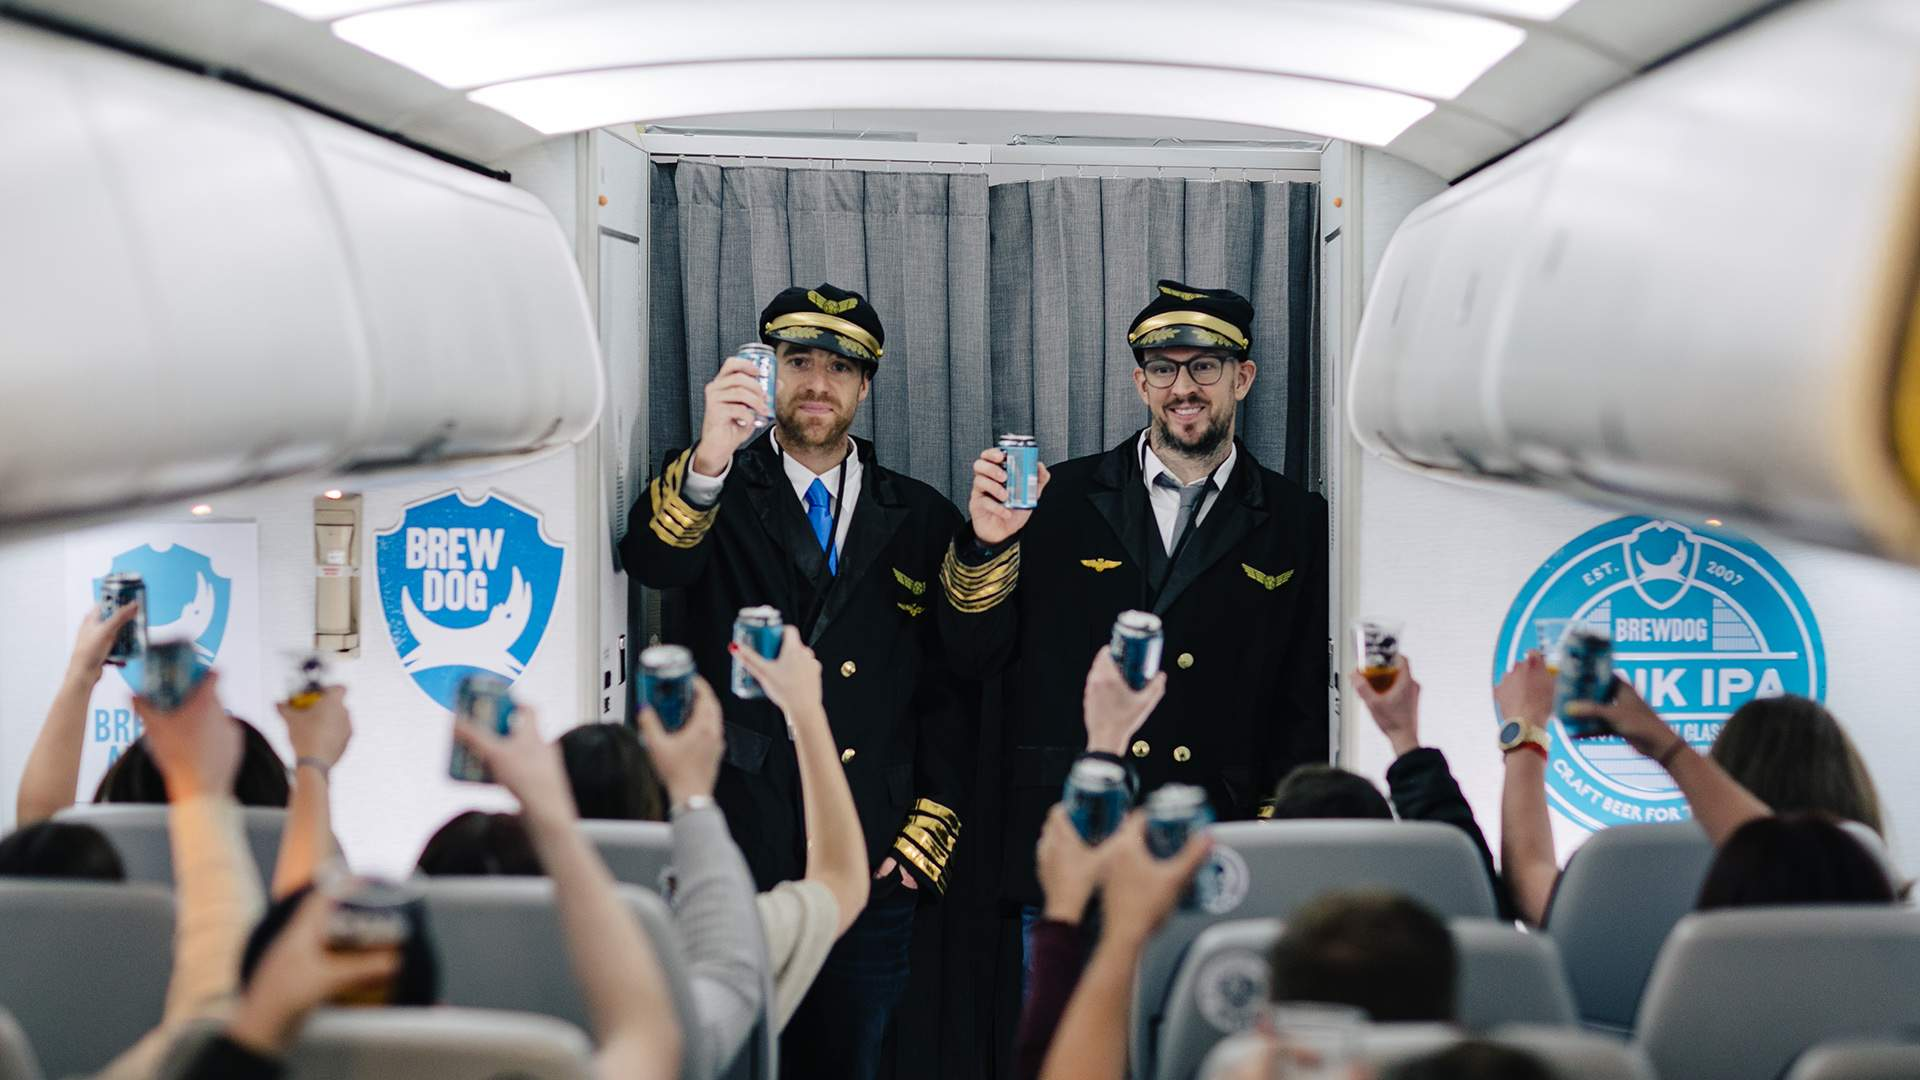 BrewDog's Suitably Boozy Craft Beer Airline Is Hitting the Skies Again